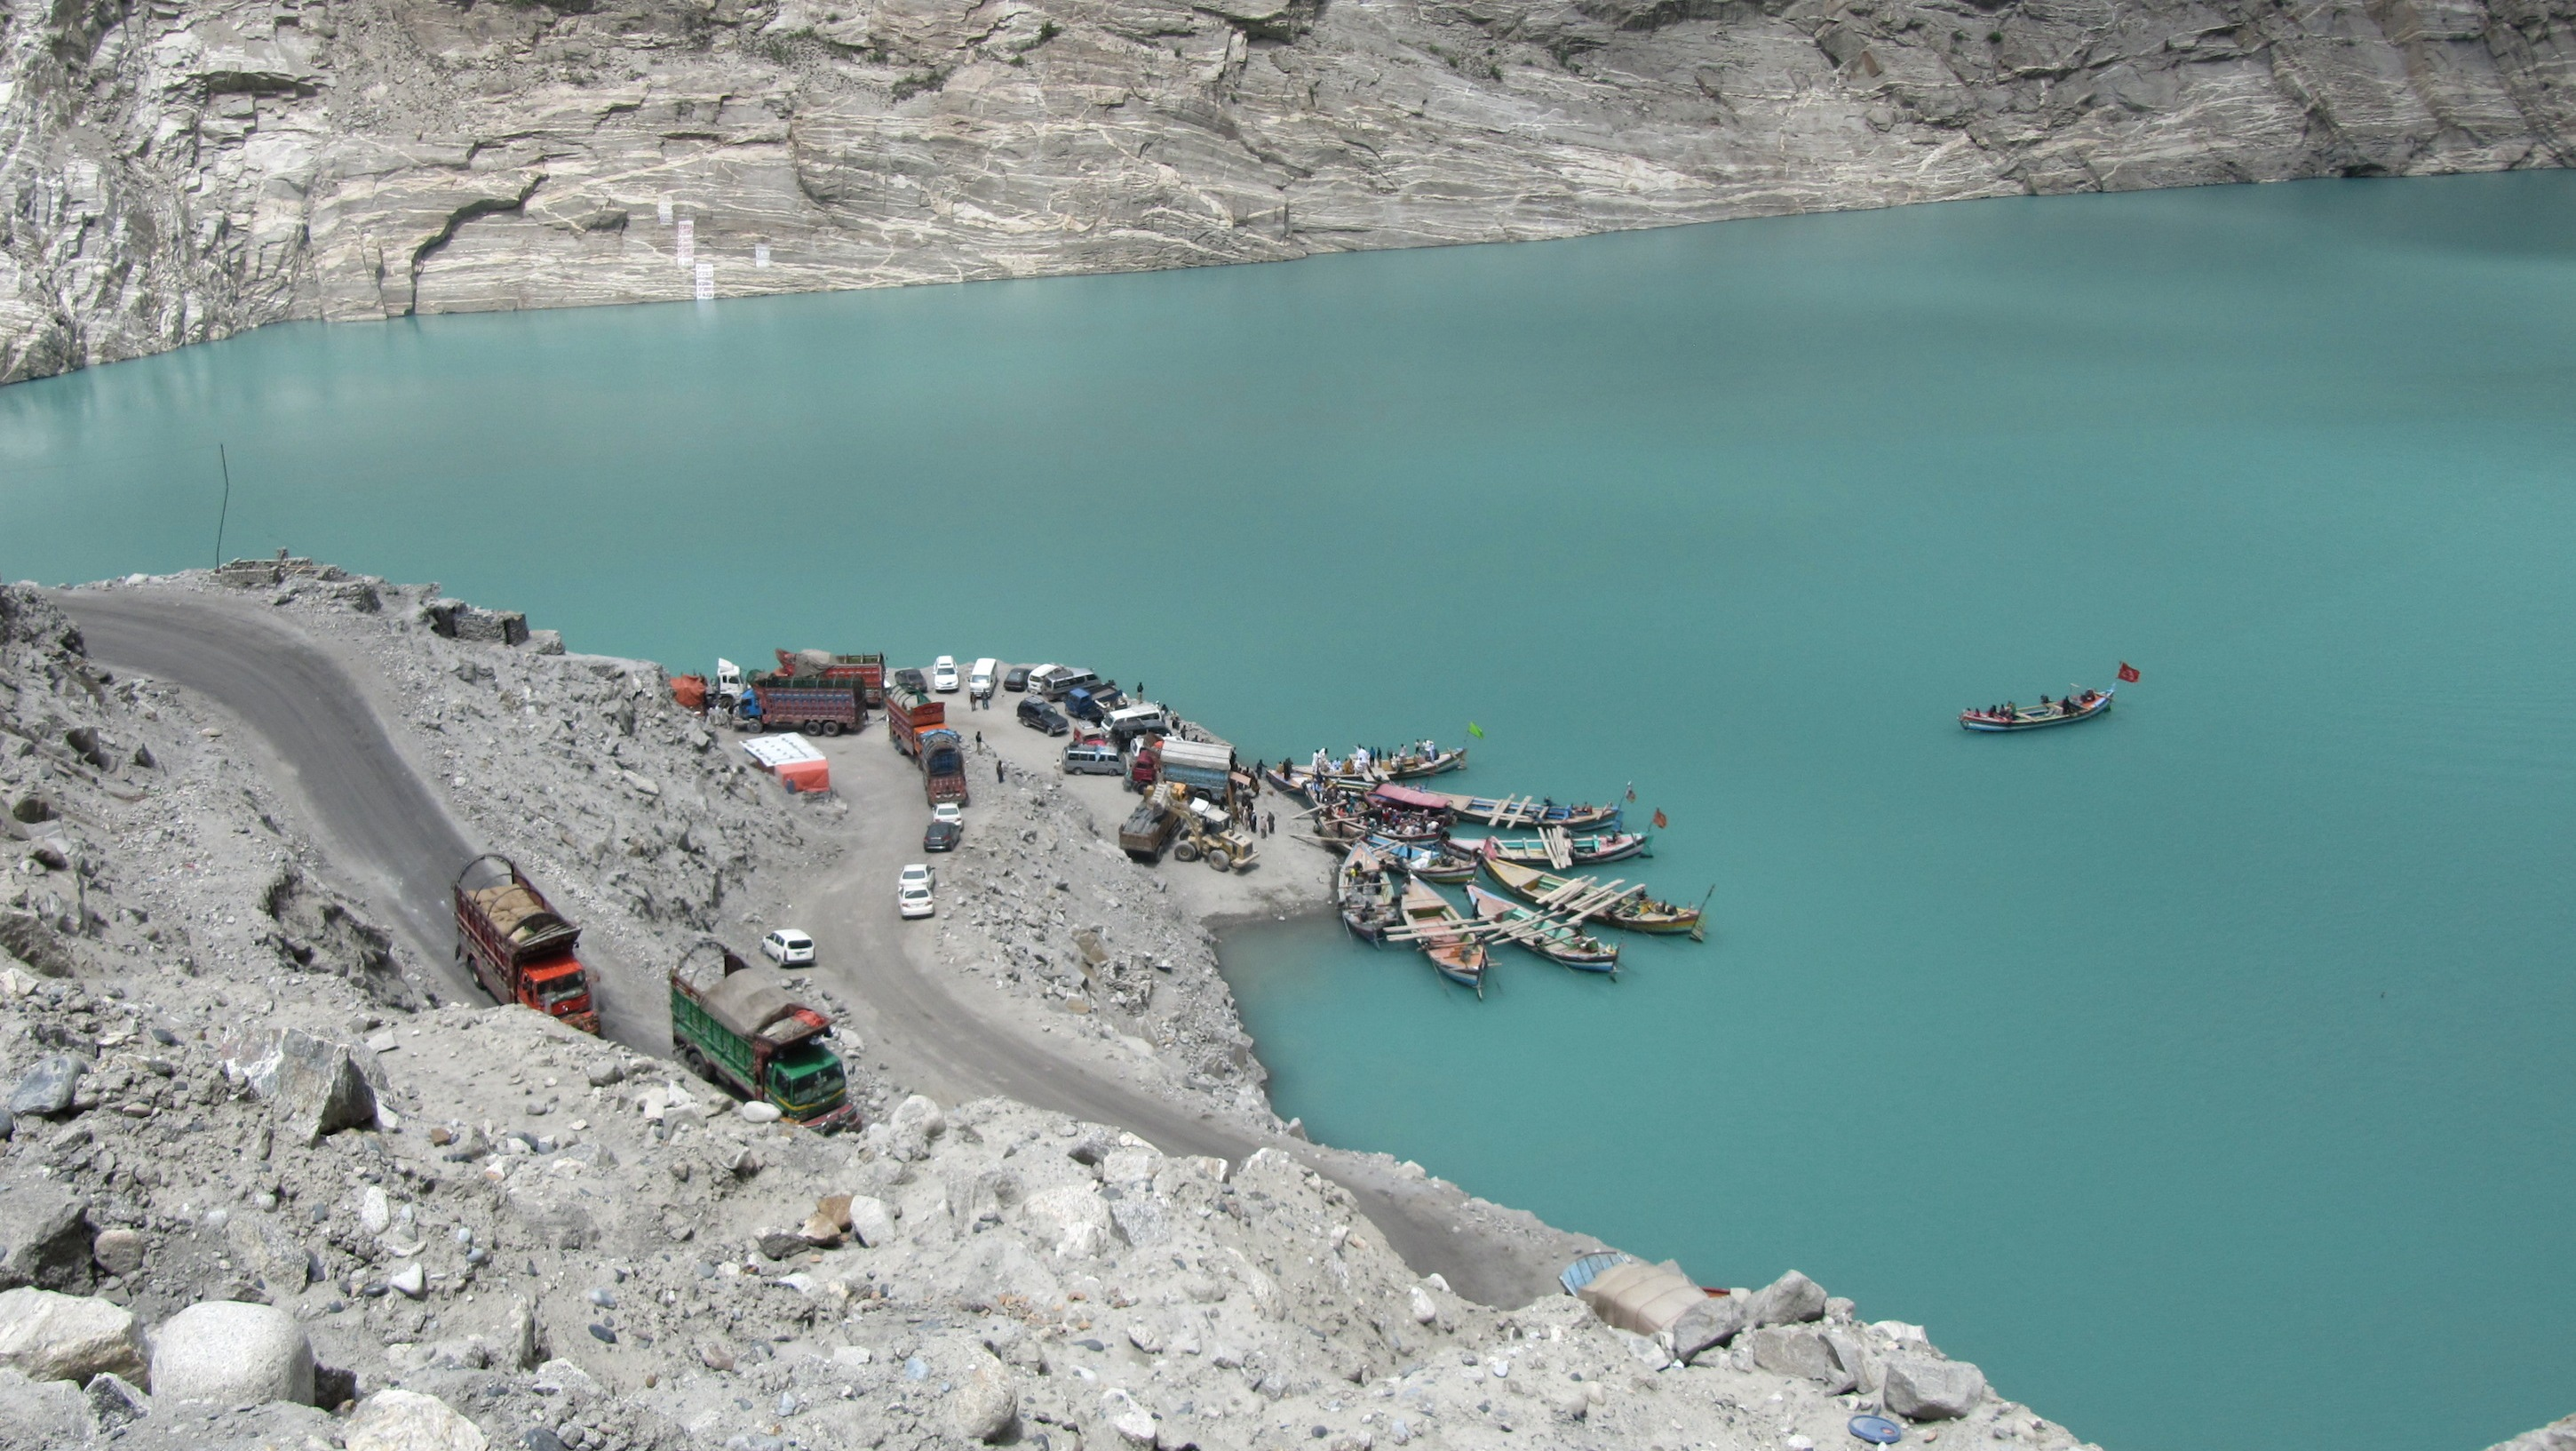 The village of Attabad was among a number destroyed in 2010 by a landslide that left behind the 21-kilometer Attabad Lake. Four years later the IDPs are still awaiting rehousing.